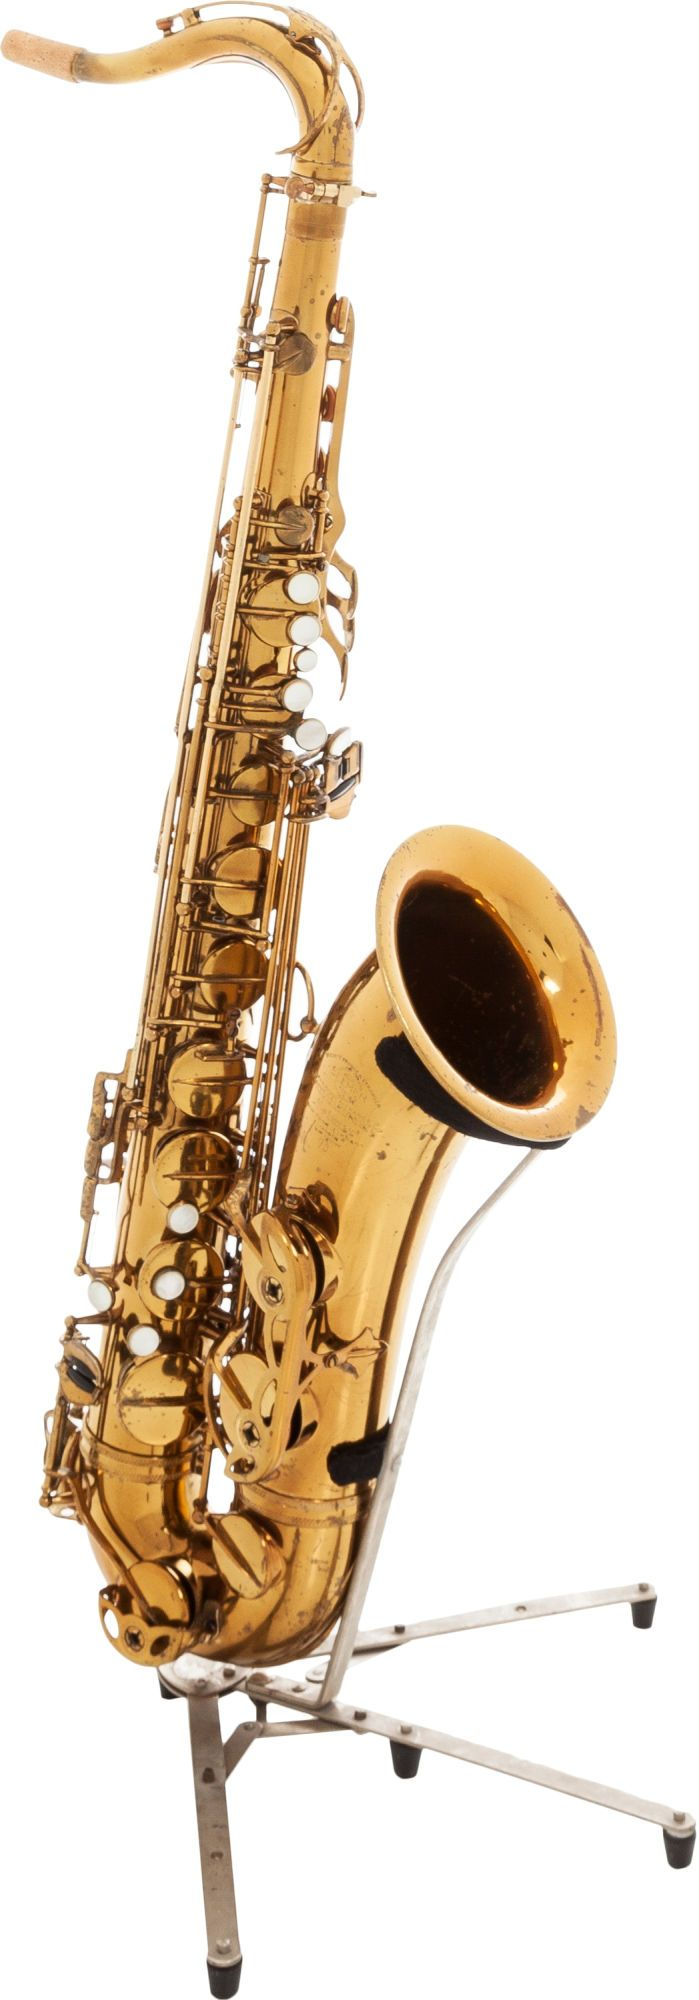 1959 Selmer Mark VI Brass Tenor Saxophone, Serial # A very nicely  re-lacquered horn with minor - Available at 2015 June 20 Vintage Guitars &.